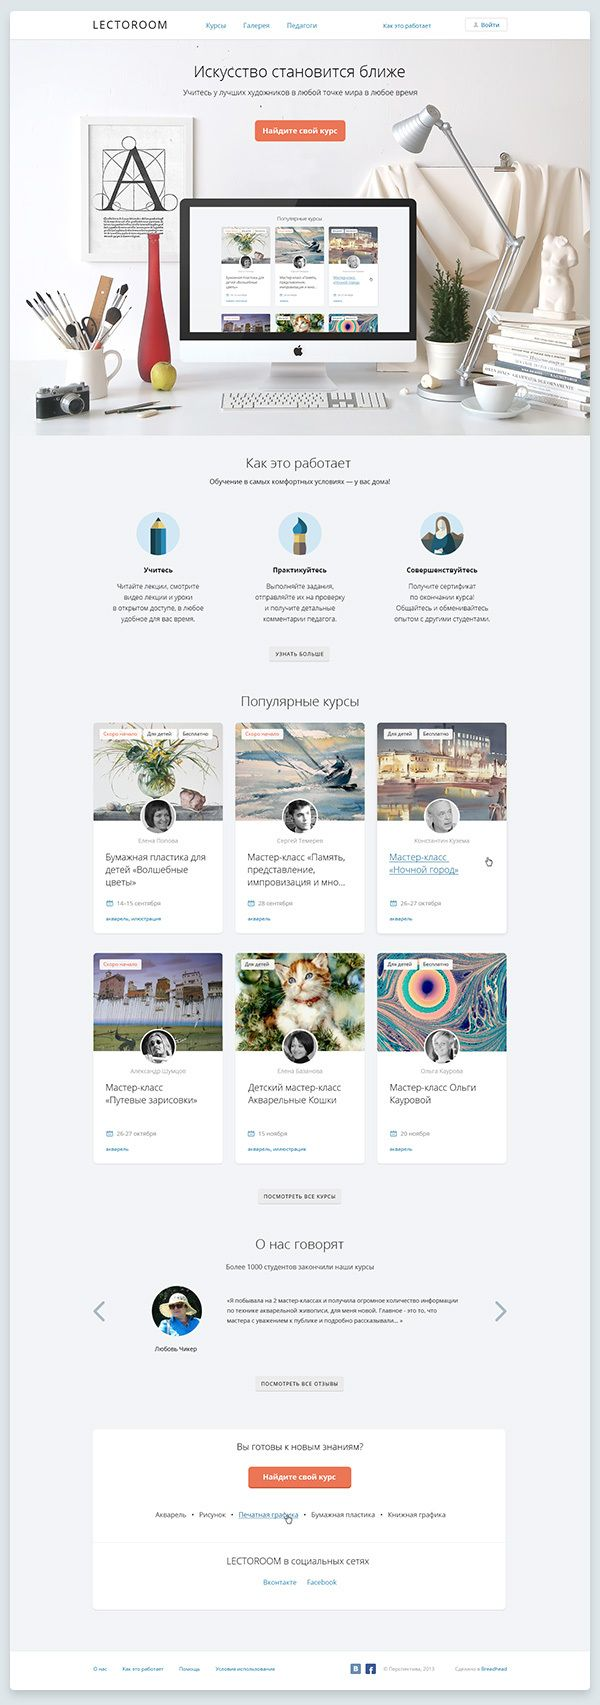 Lectoroom on Web Design Served